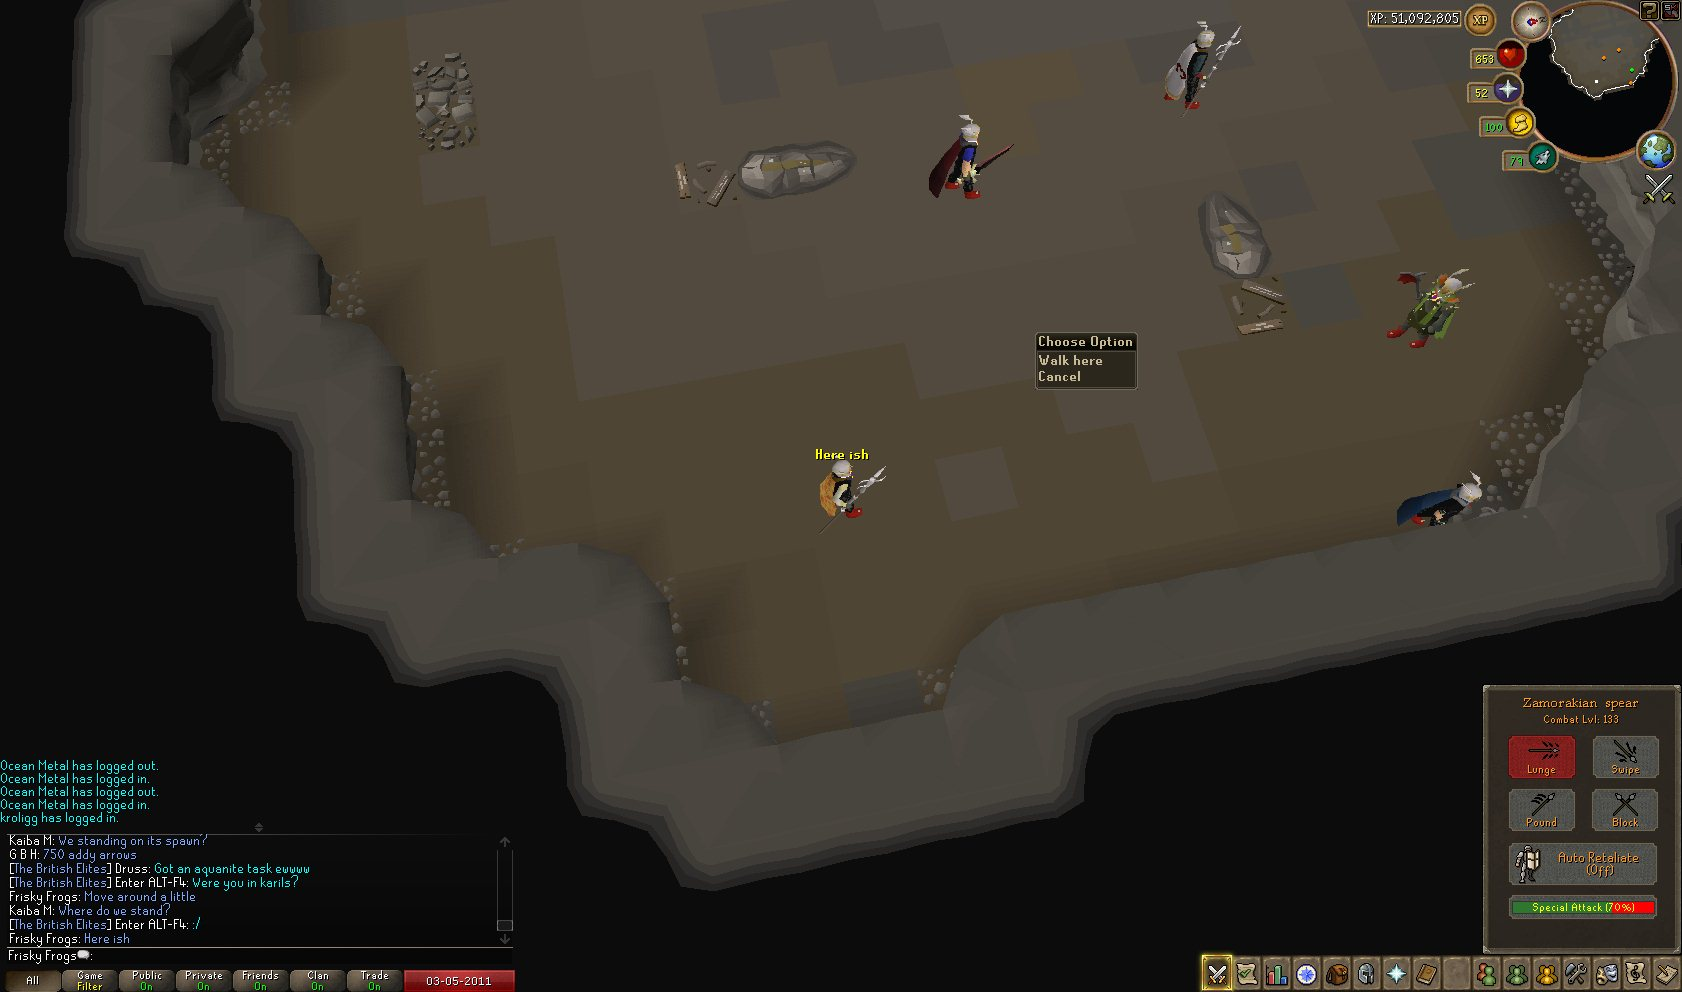 Form a circle/box around corp's spawn point